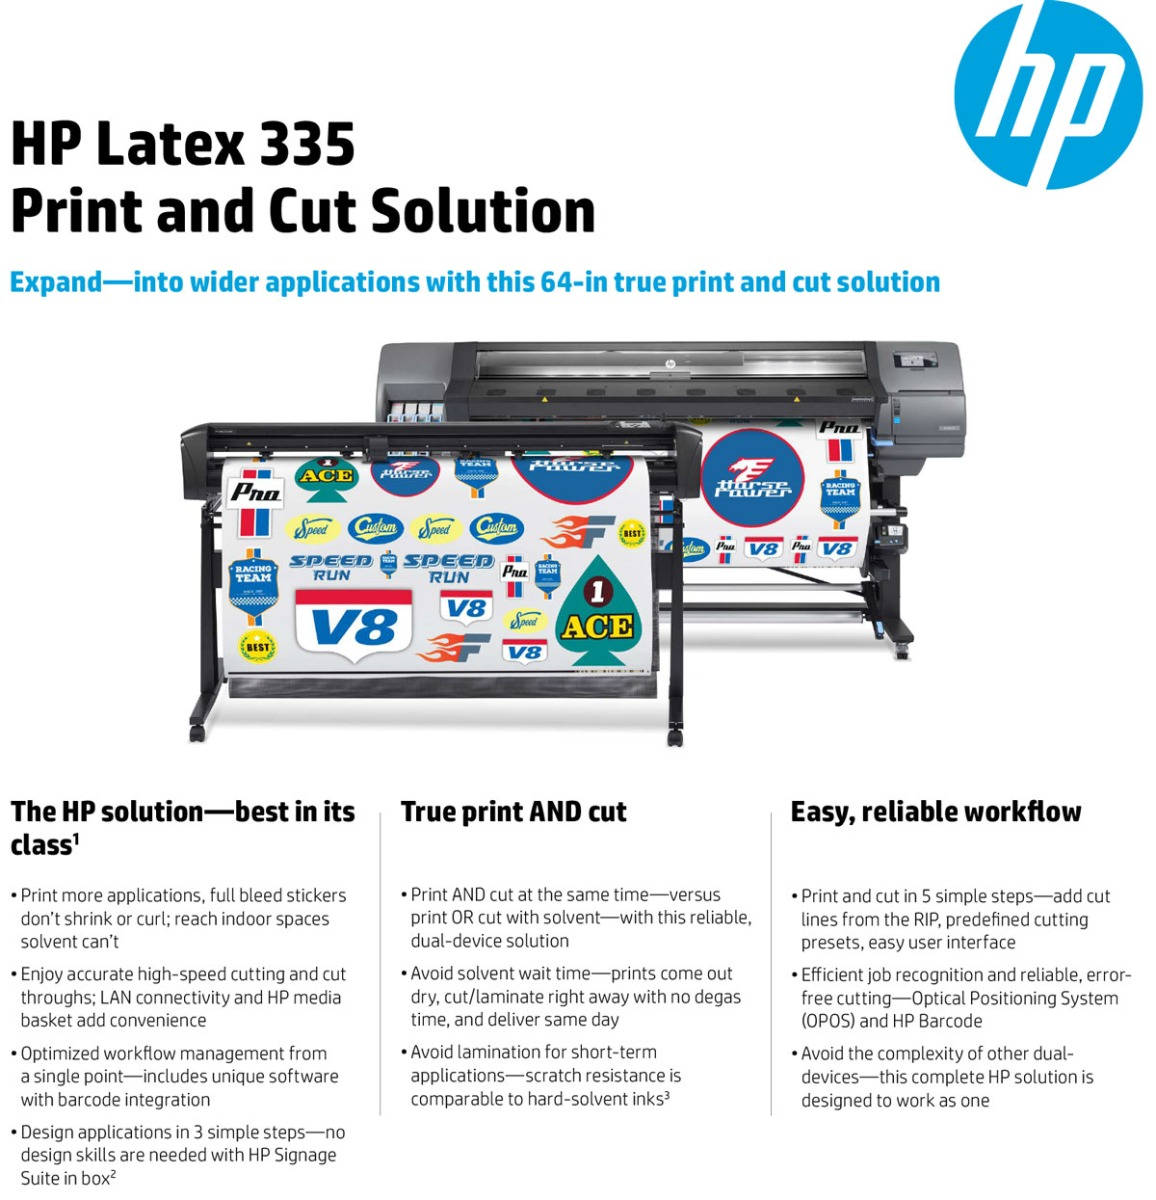 hp latex 335 print and cut solution features including print and cut at same time signage suite bar code for easy setup print and cut in 5 steps opos optical system